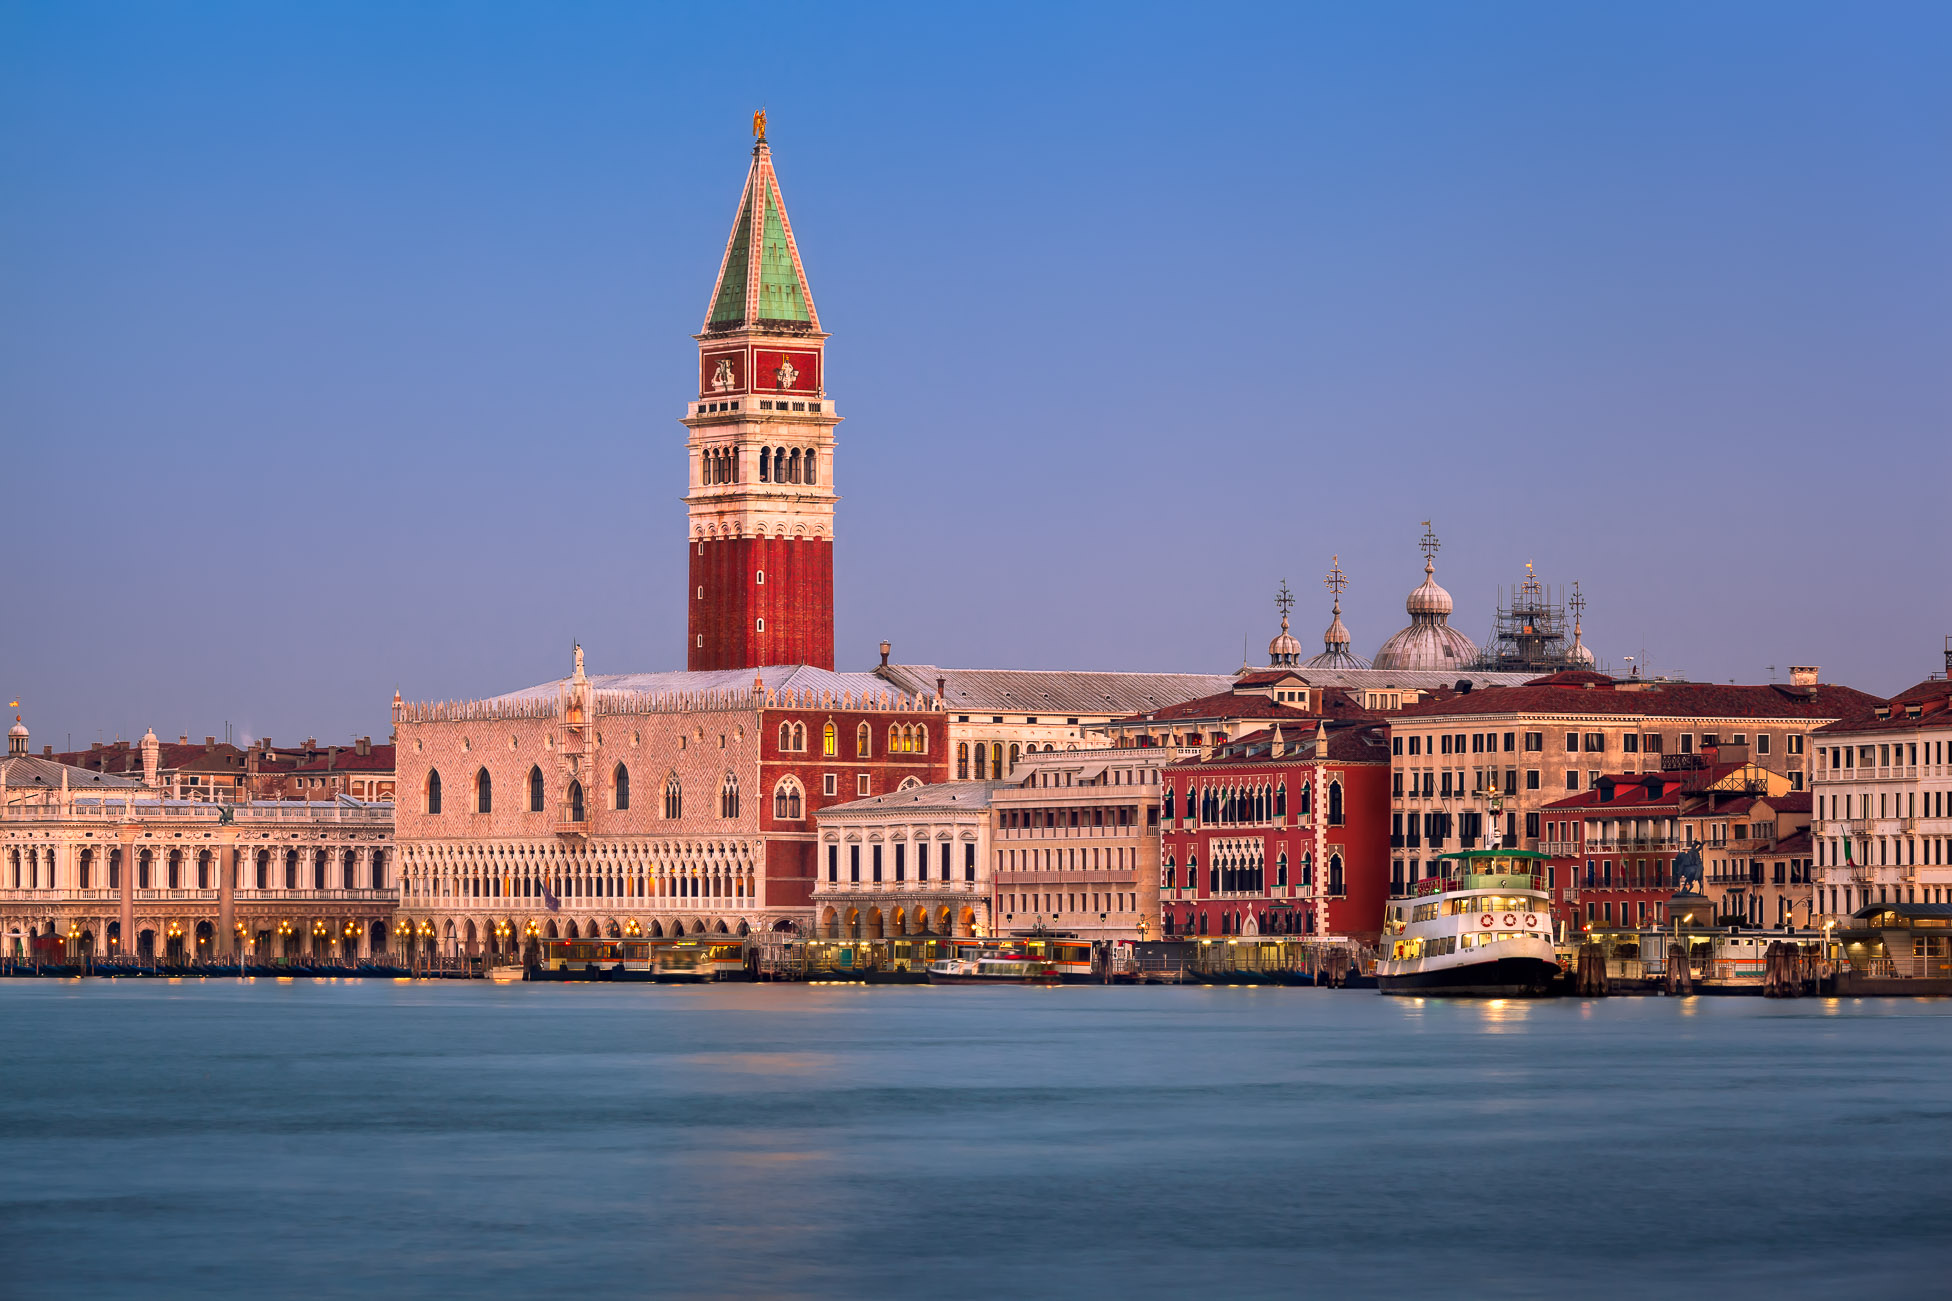 Campanile, Doges Palace and Venice Skyline in the Morning, Venice, Italy